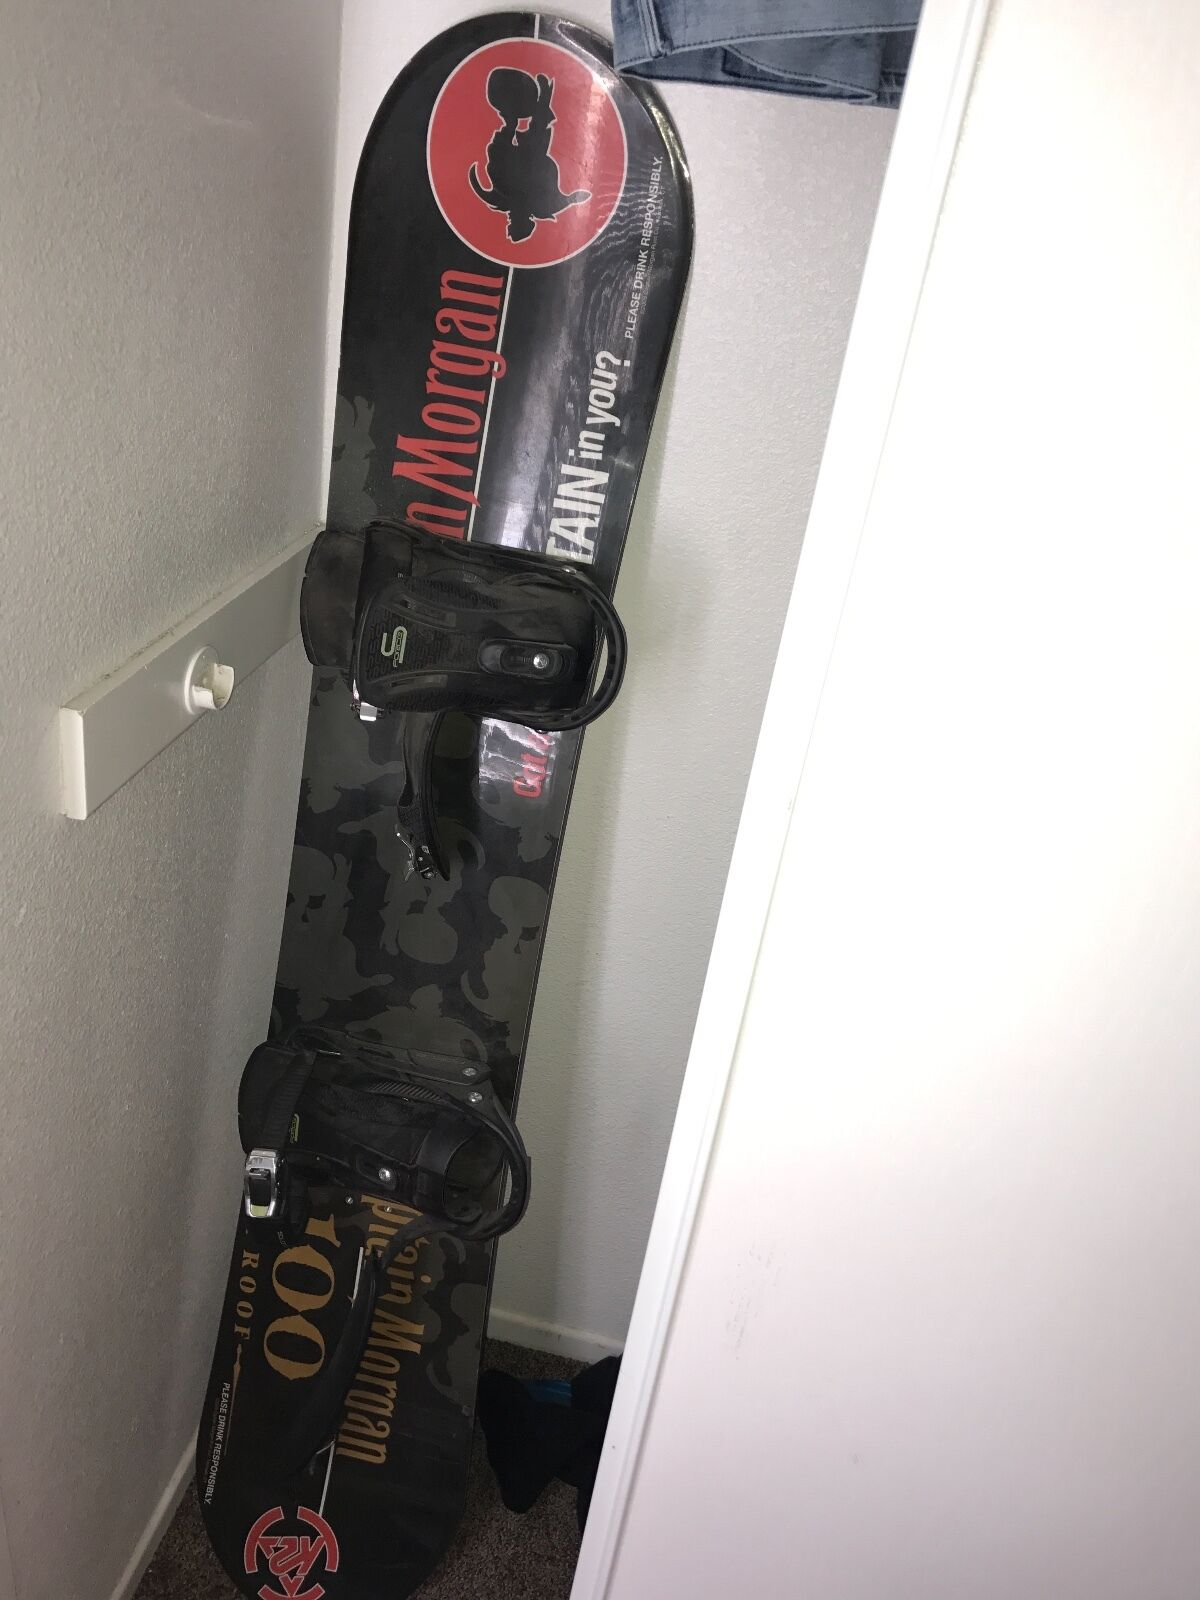 Captain Morgan special edition with Smirnoff with bindings snowboard rare